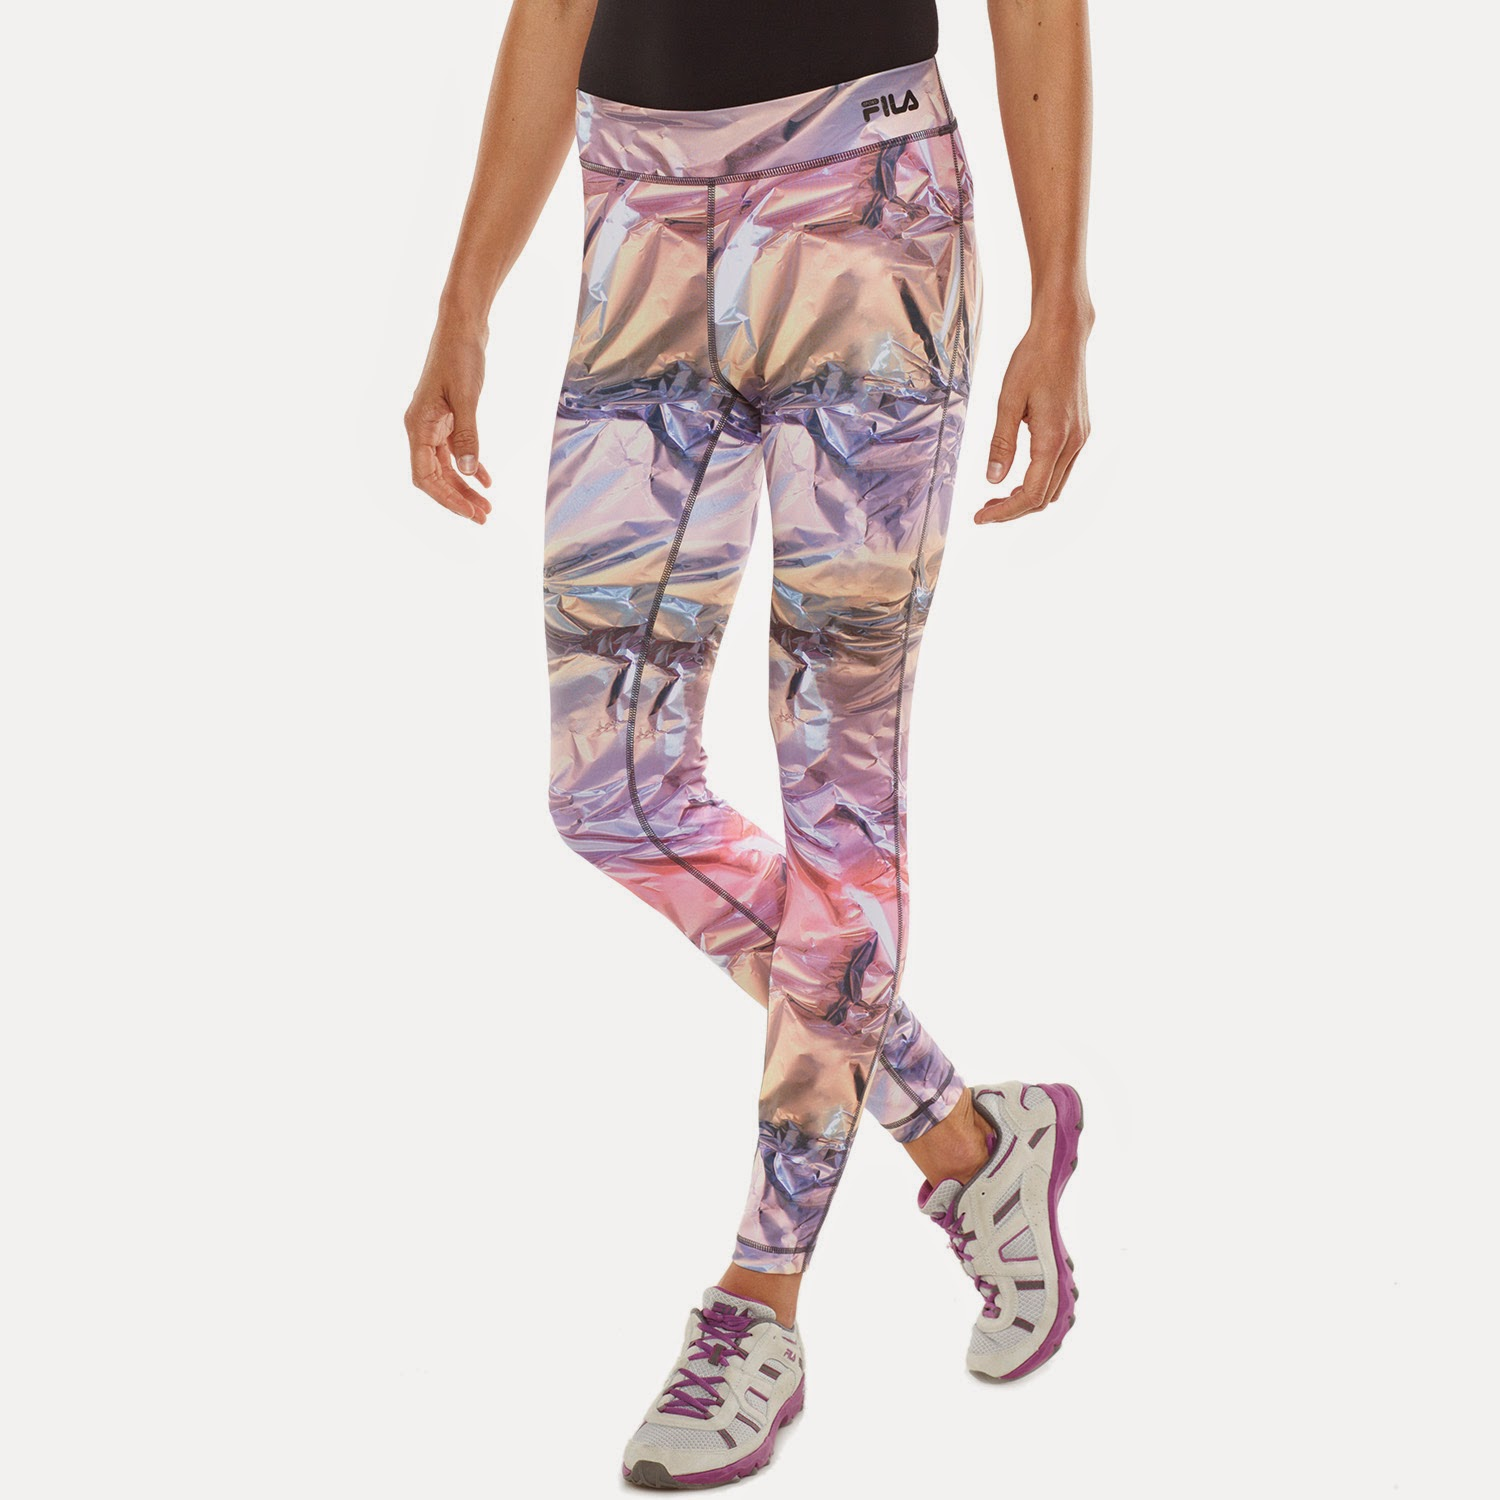 FILA SPORT® Maui Performance Leggings